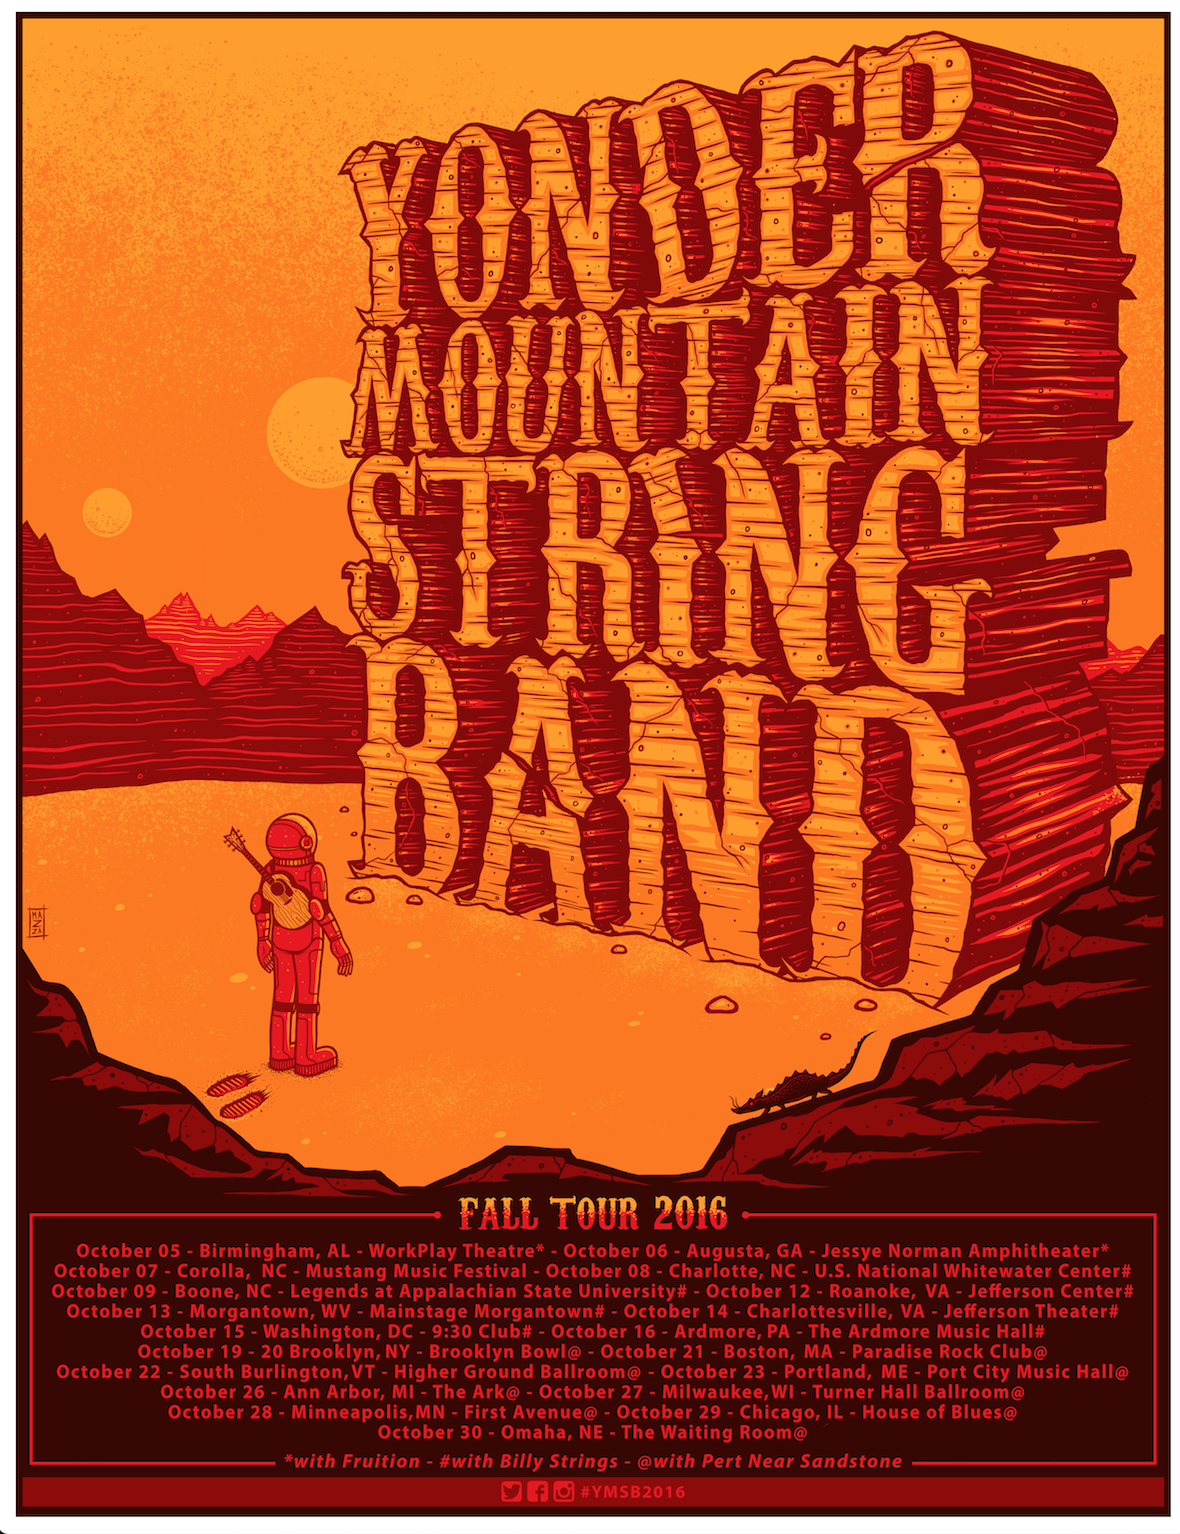 Yonder Mountain String Band has announced the Fall Tour Schedule for October.